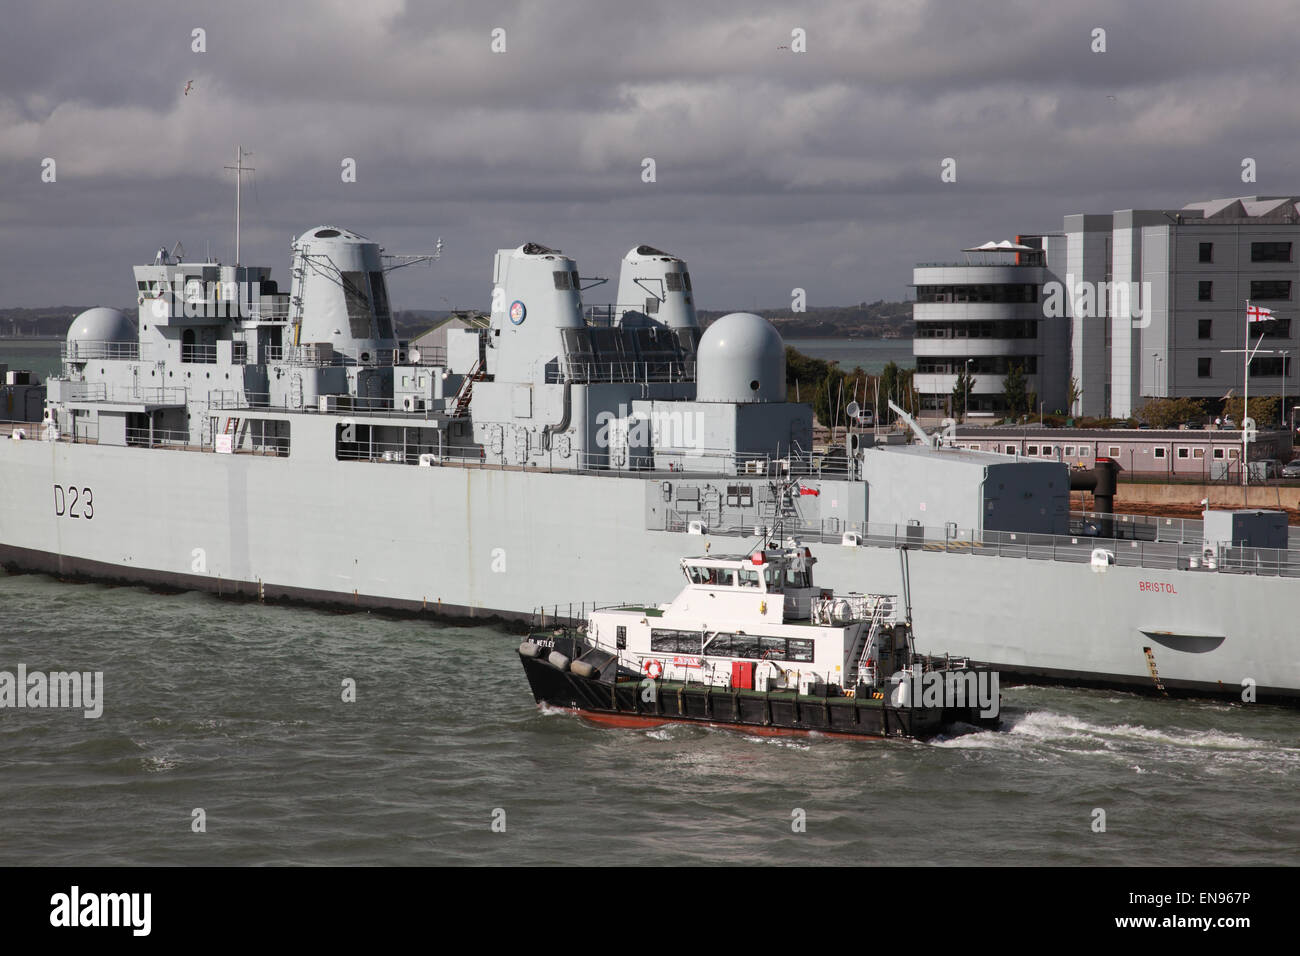 Port tender ship SD Netley and D23 HMS Bristol in Portsmouth Harbour, Hampshire, England, UK - Stock Image